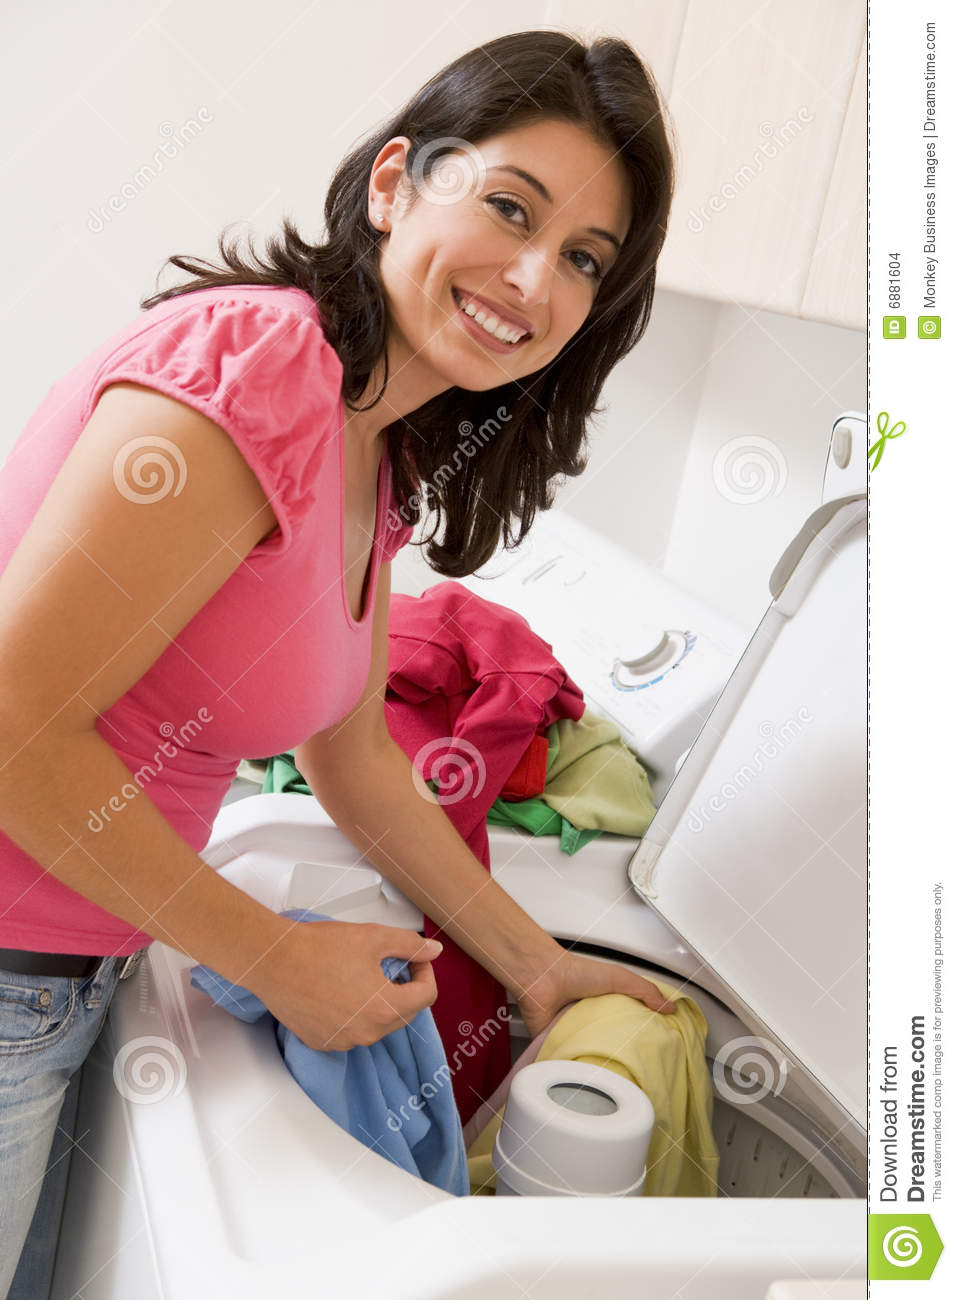 Woman Doing Laundry Stock Images - Image: 6881604